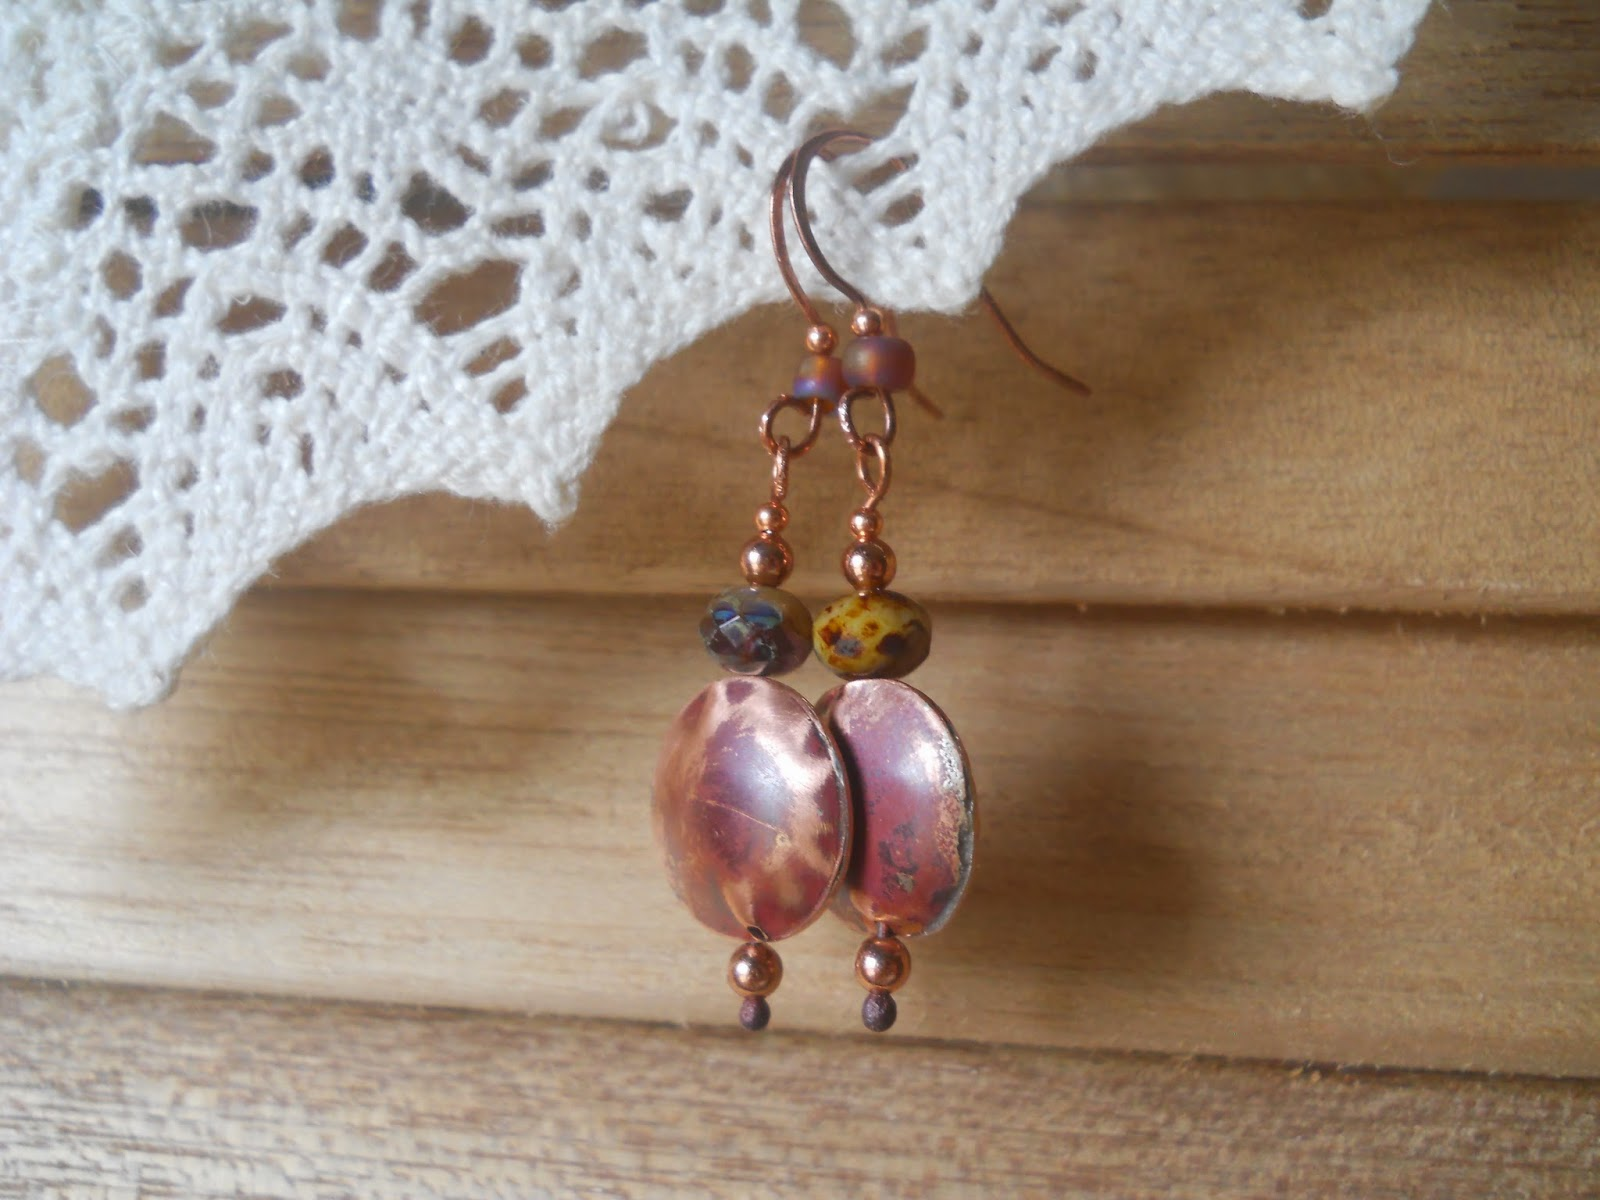 hand crafted hollow bead earrings by wind dancer studios on Etsy